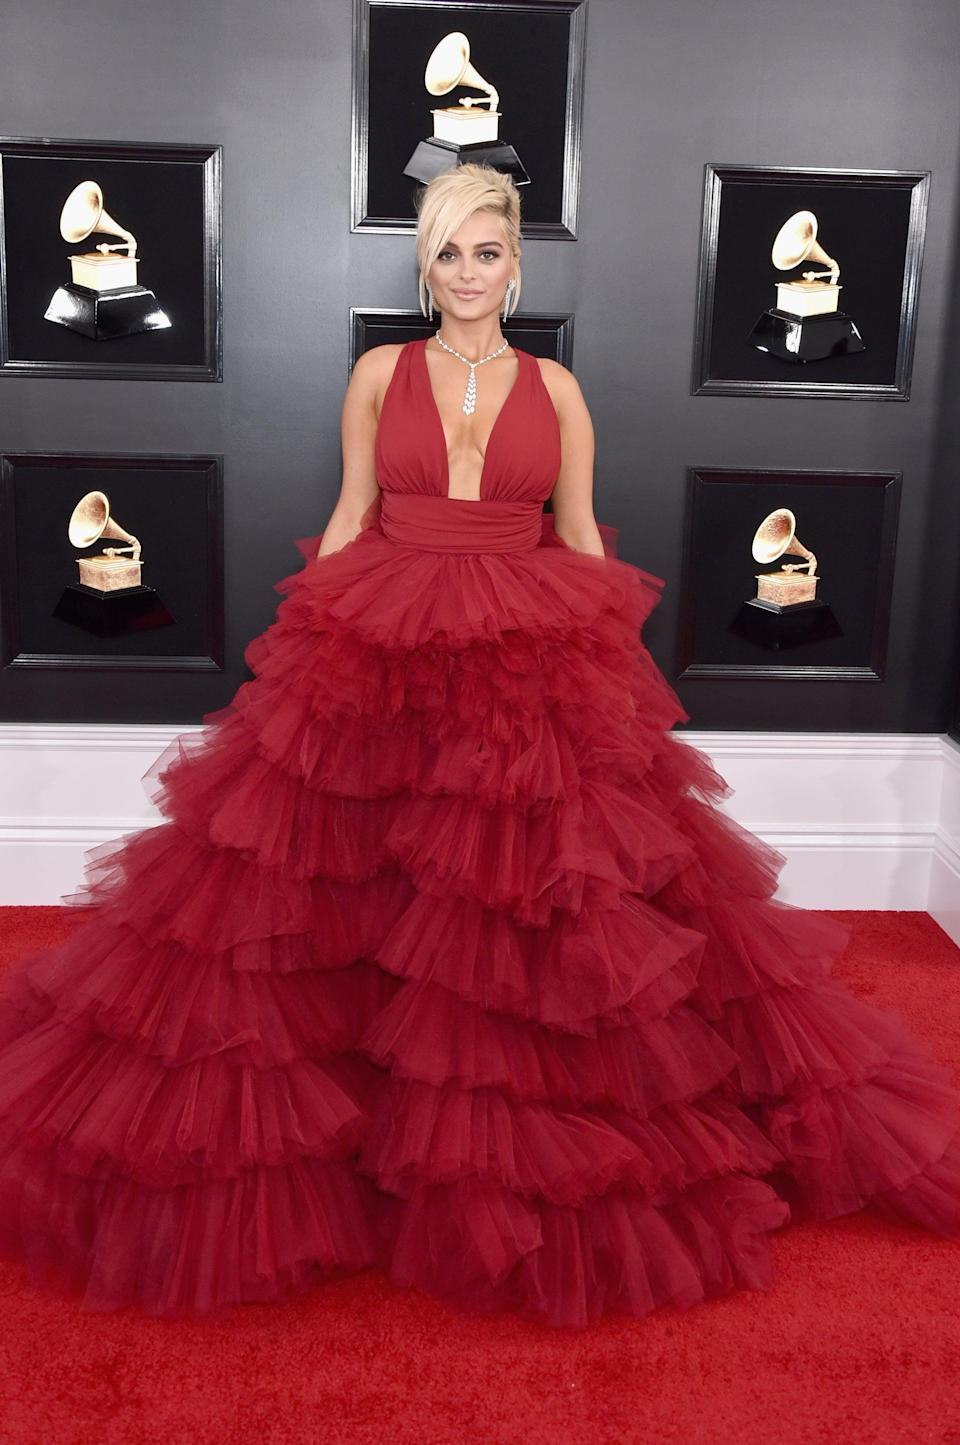 """<p>Wearing a Monsoori dress, after <a rel=""""nofollow noopener"""" href=""""https://www.popsugar.com/fashion/Bebe-Rexha-Says-Designers-Wont-Dress-Her-Grammys-45703169"""" target=""""_blank"""" data-ylk=""""slk:speaking up about having a hard time finding designers who would dress her for the red carpet"""" class=""""link rapid-noclick-resp"""">speaking up about having a hard time finding designers who would dress her for the red carpet</a>. Bebe accessorized with a Hearts on Fire ring and Giuseppe Zanotti shoes.</p>"""